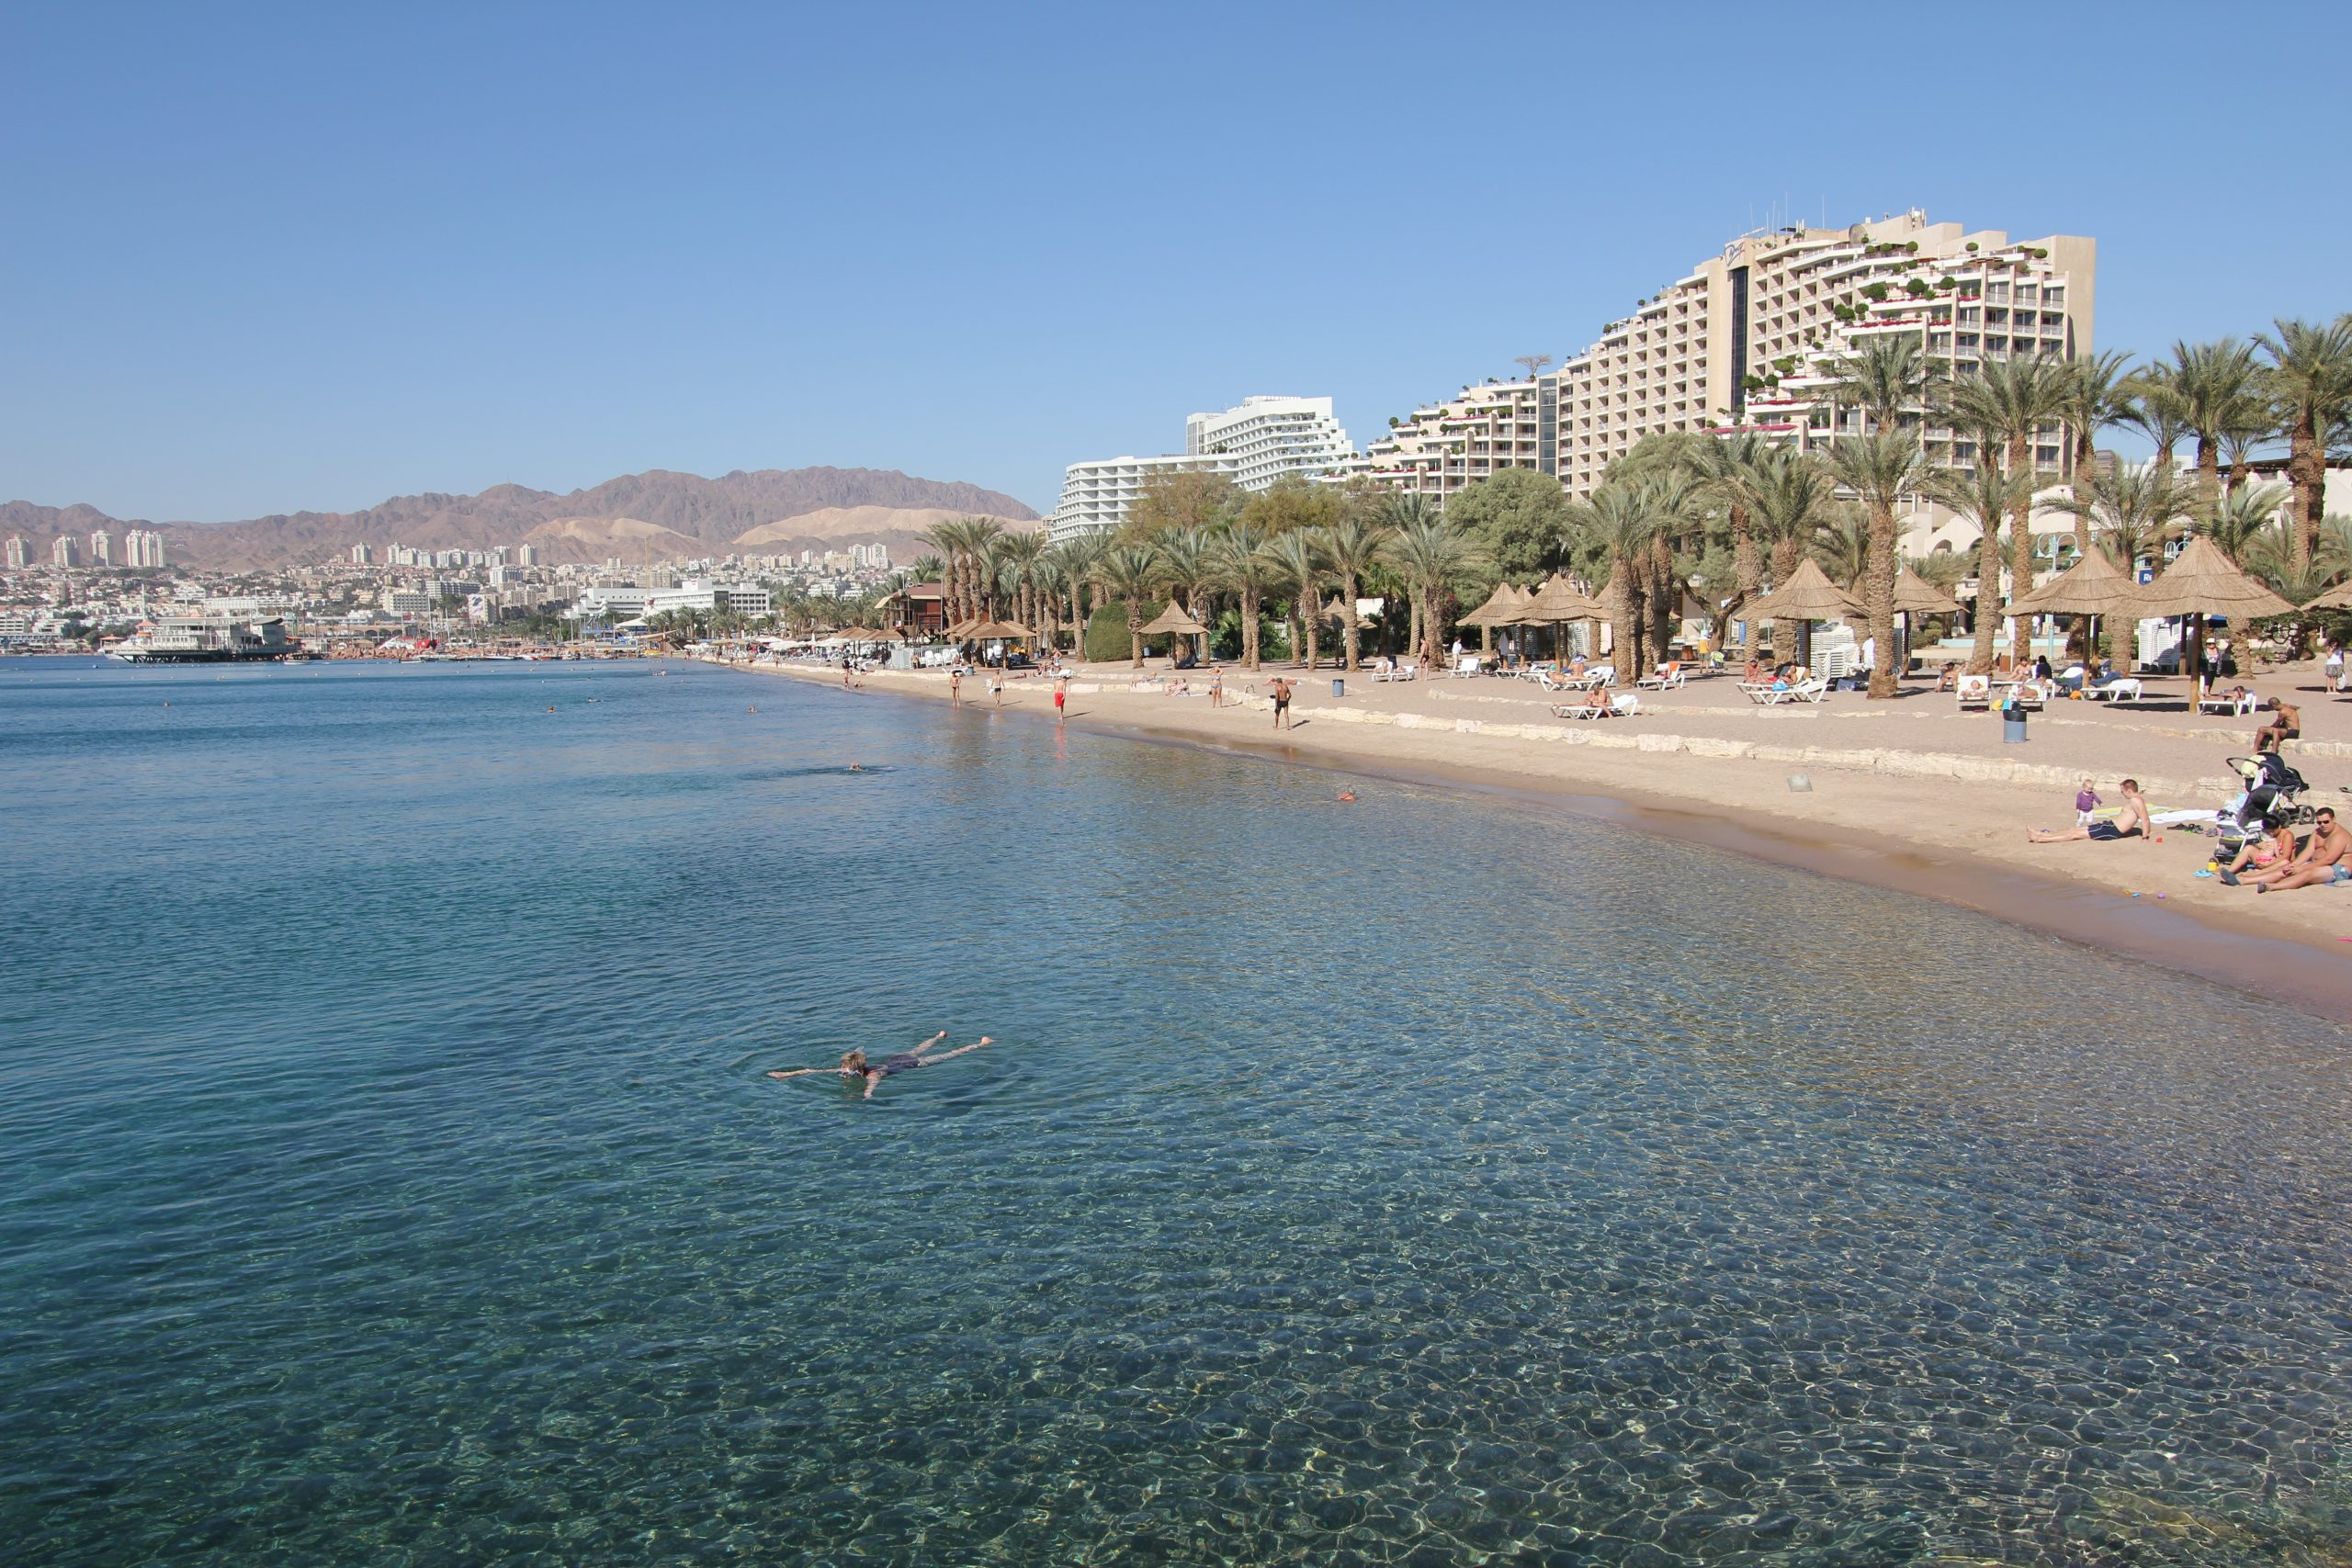 Eilat's tourism industry was struggling to survive long before COVID-19